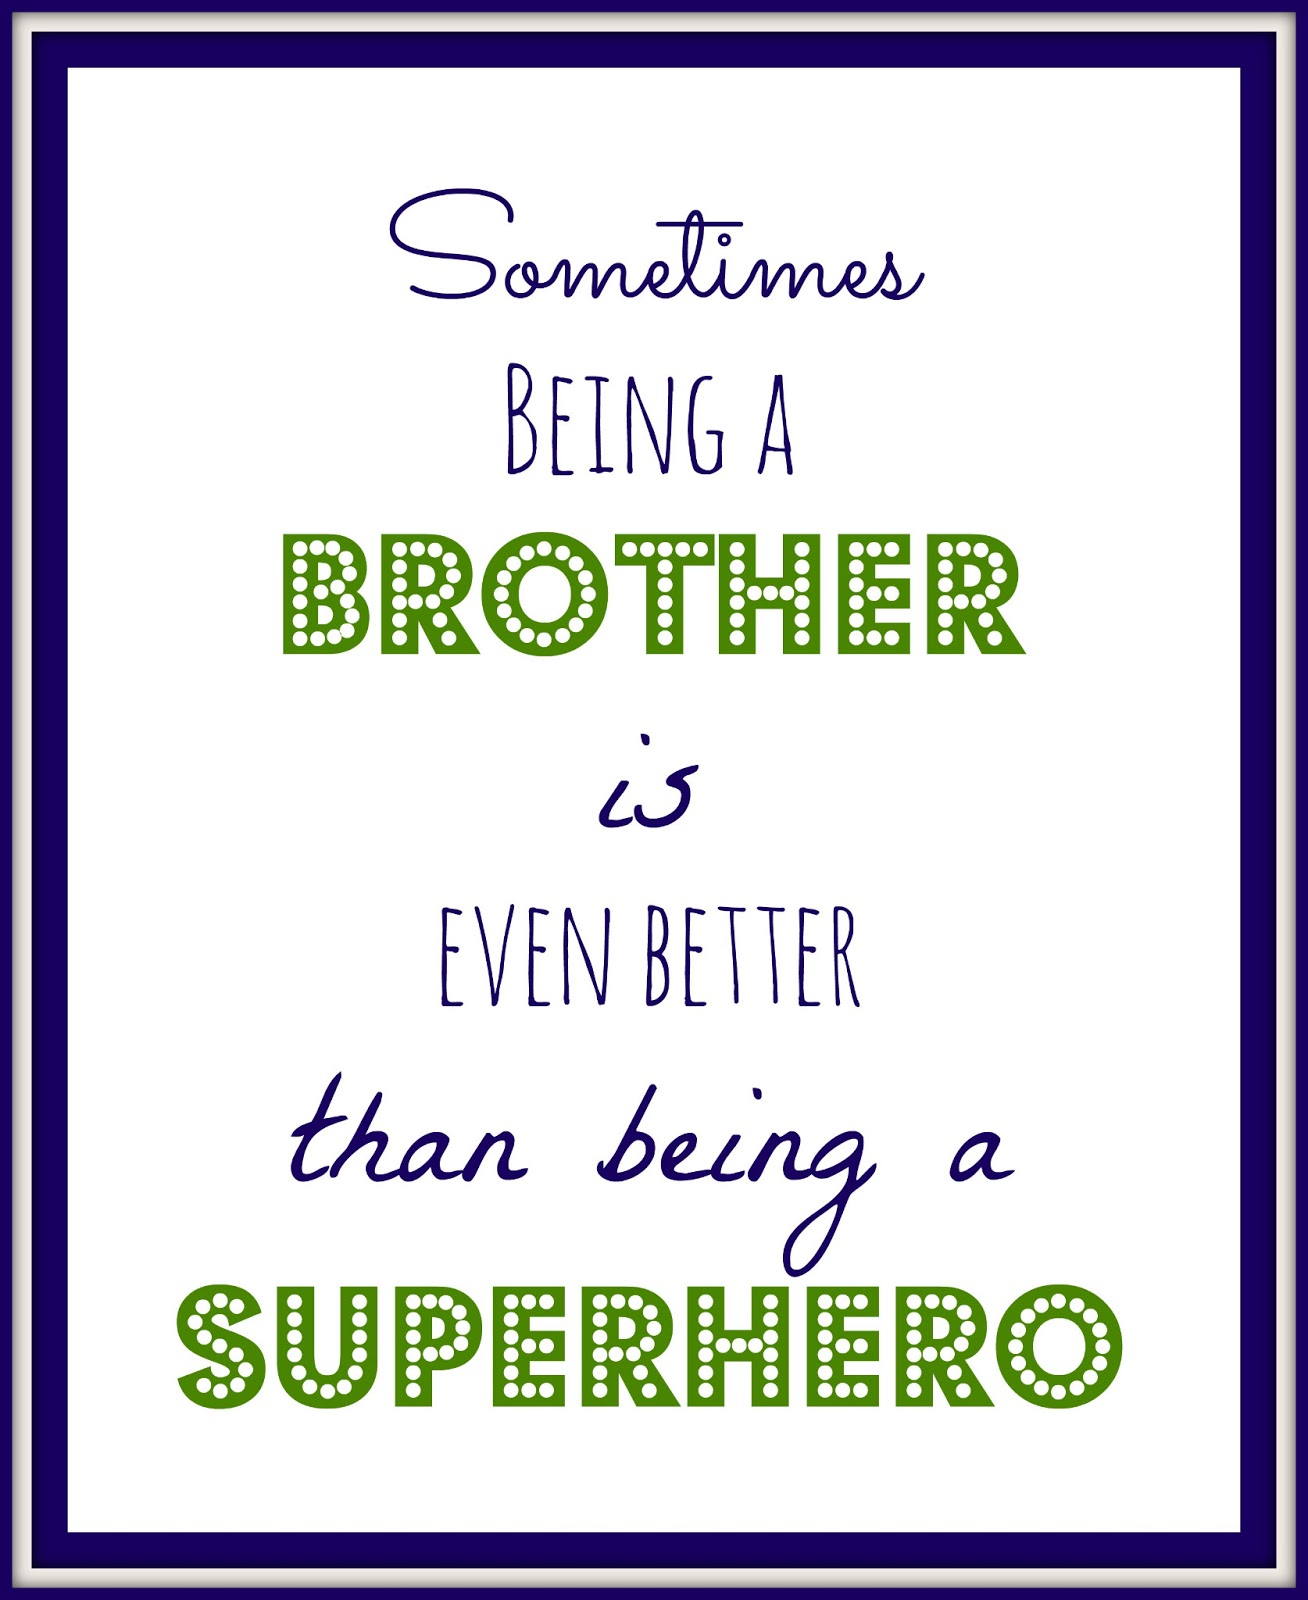 Quotes In Brother: Big Boy Room Update + Exciting Blog News